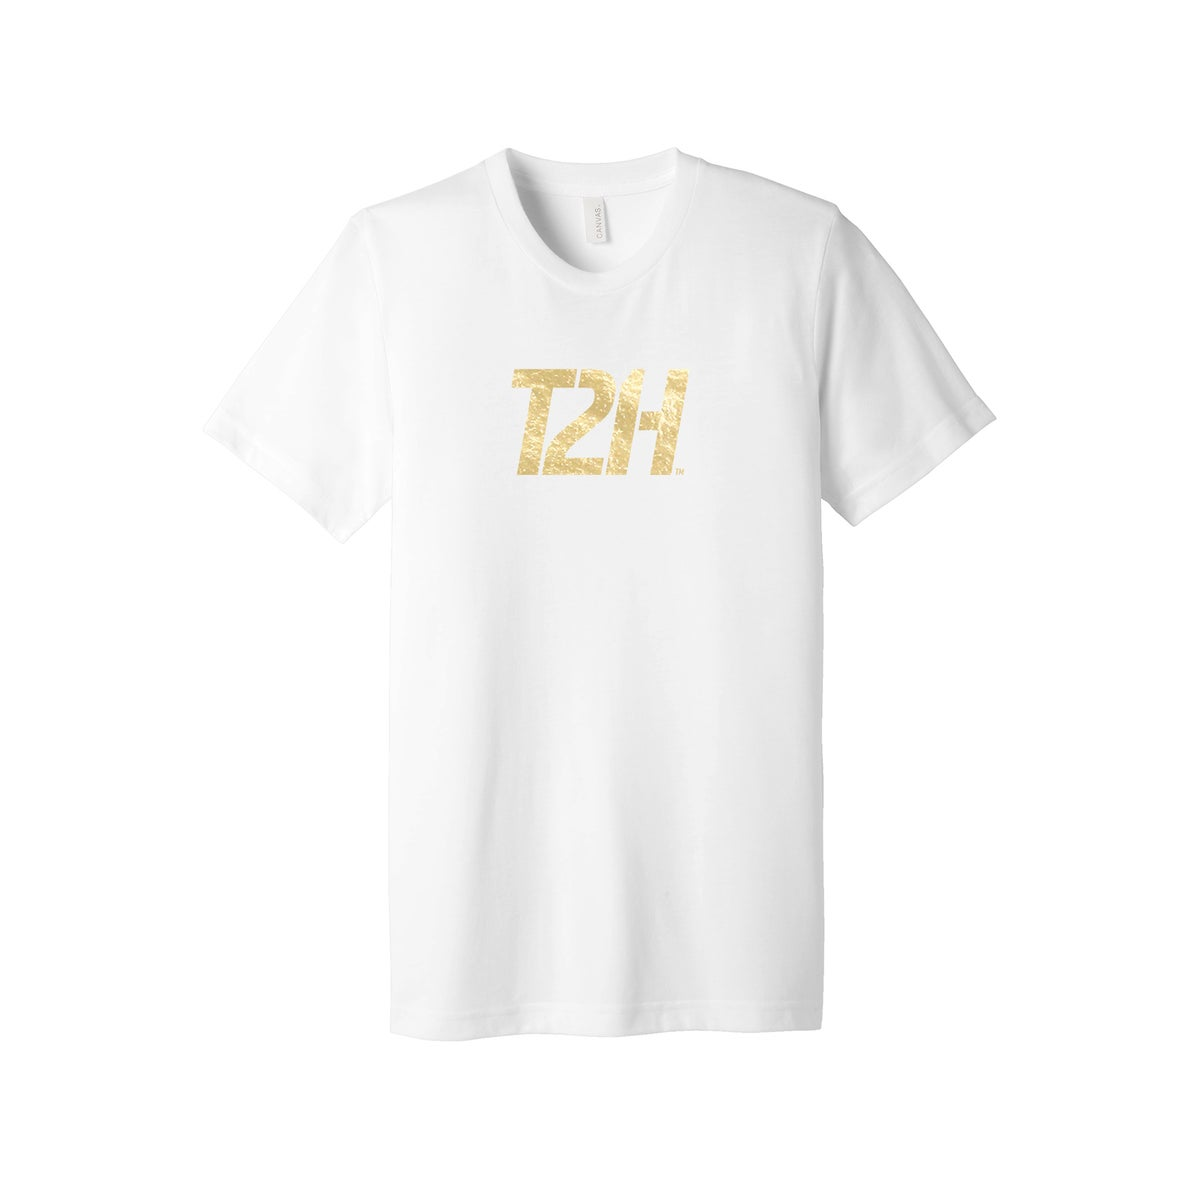 Image of Available for Pre Sale - Gold T21H Tee